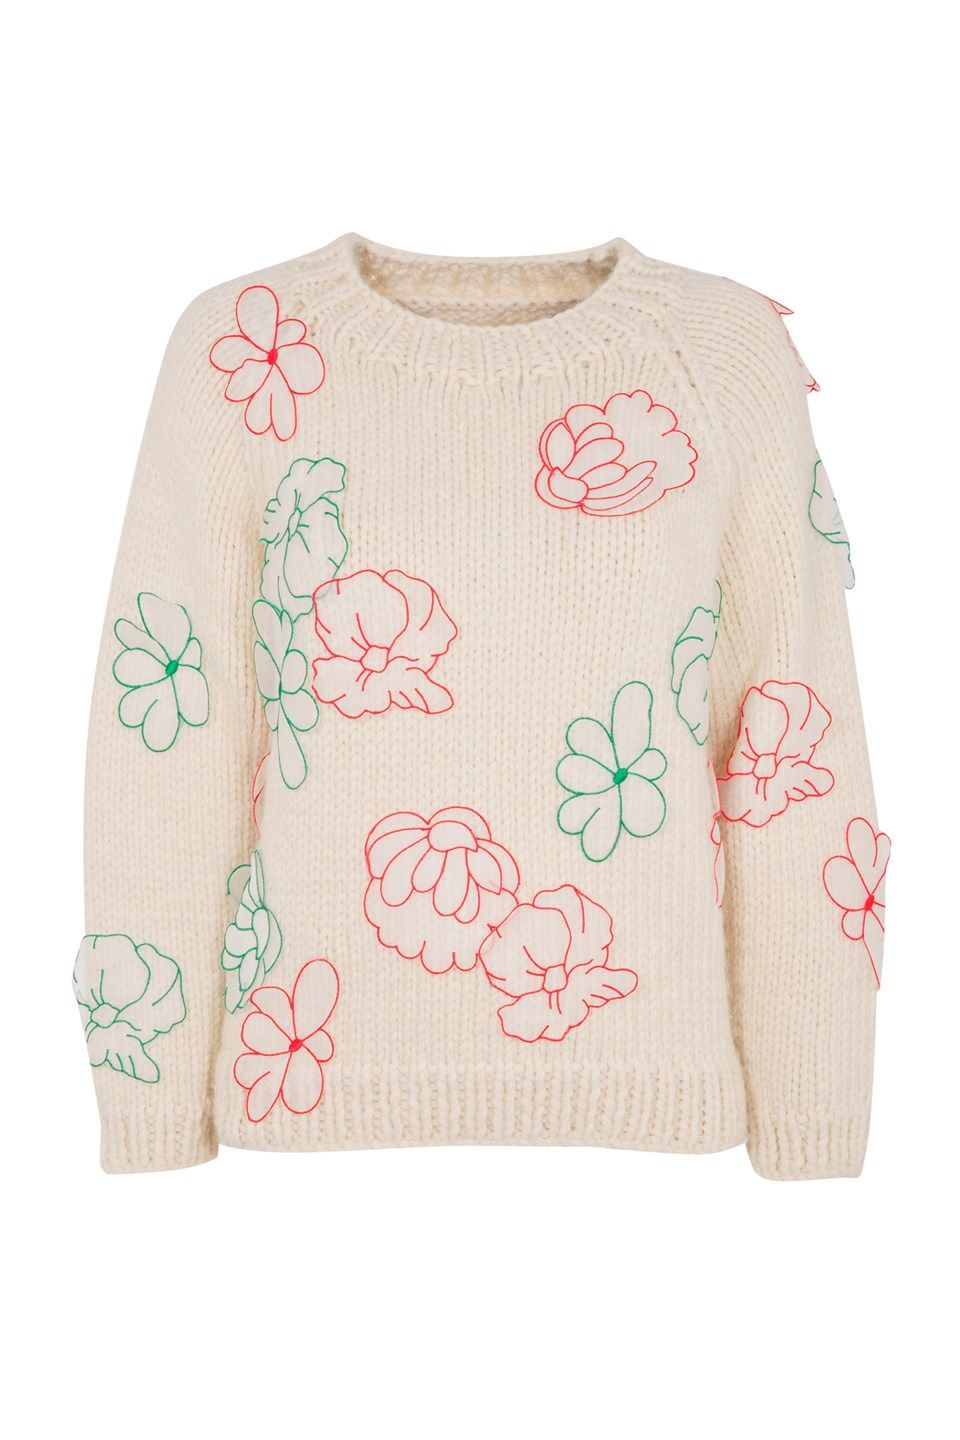 The Christmas Jumper gets a high fashion makeover (With